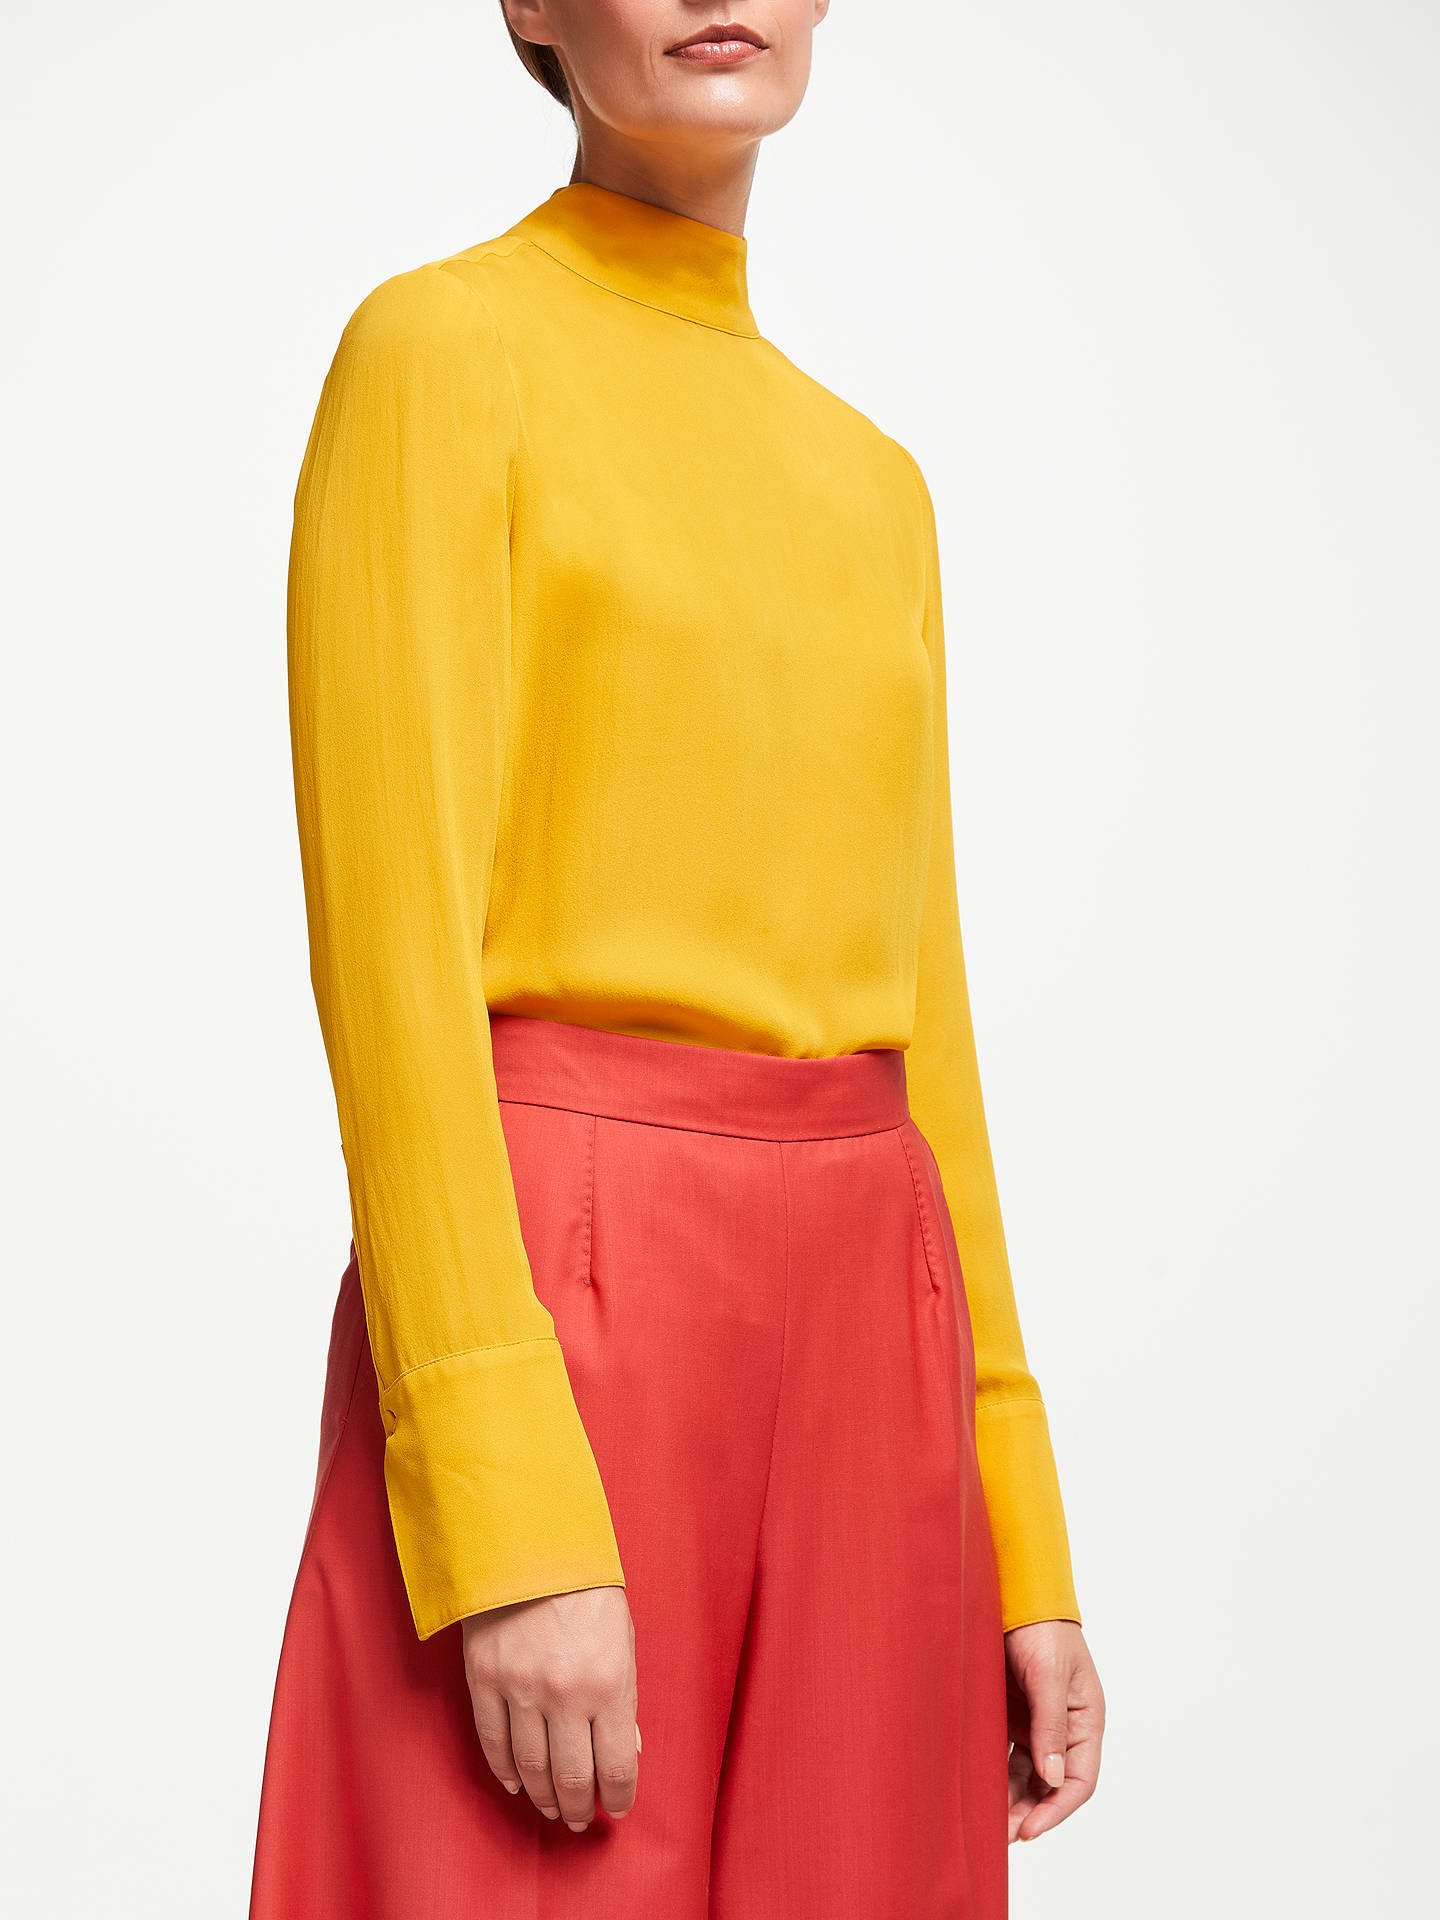 BuyJohn Lewis & Partners High Neck Silk Blouse, Mustard, 8 Online at johnlewis.com